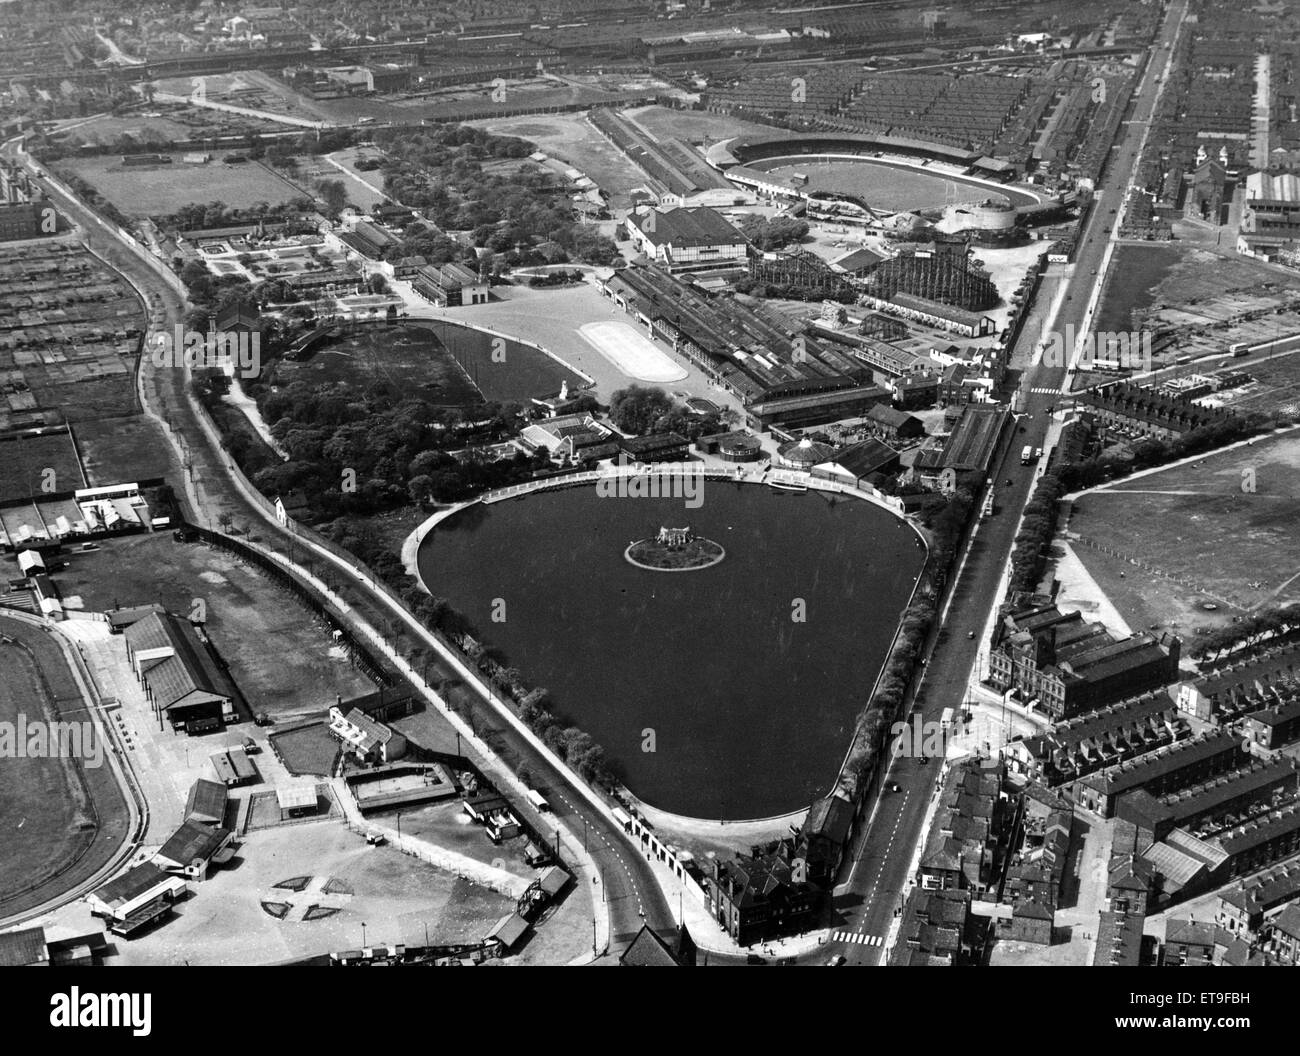 Aerial view of Belle Vue in the Gorton area of  Manchester. August 1957. - Stock Image